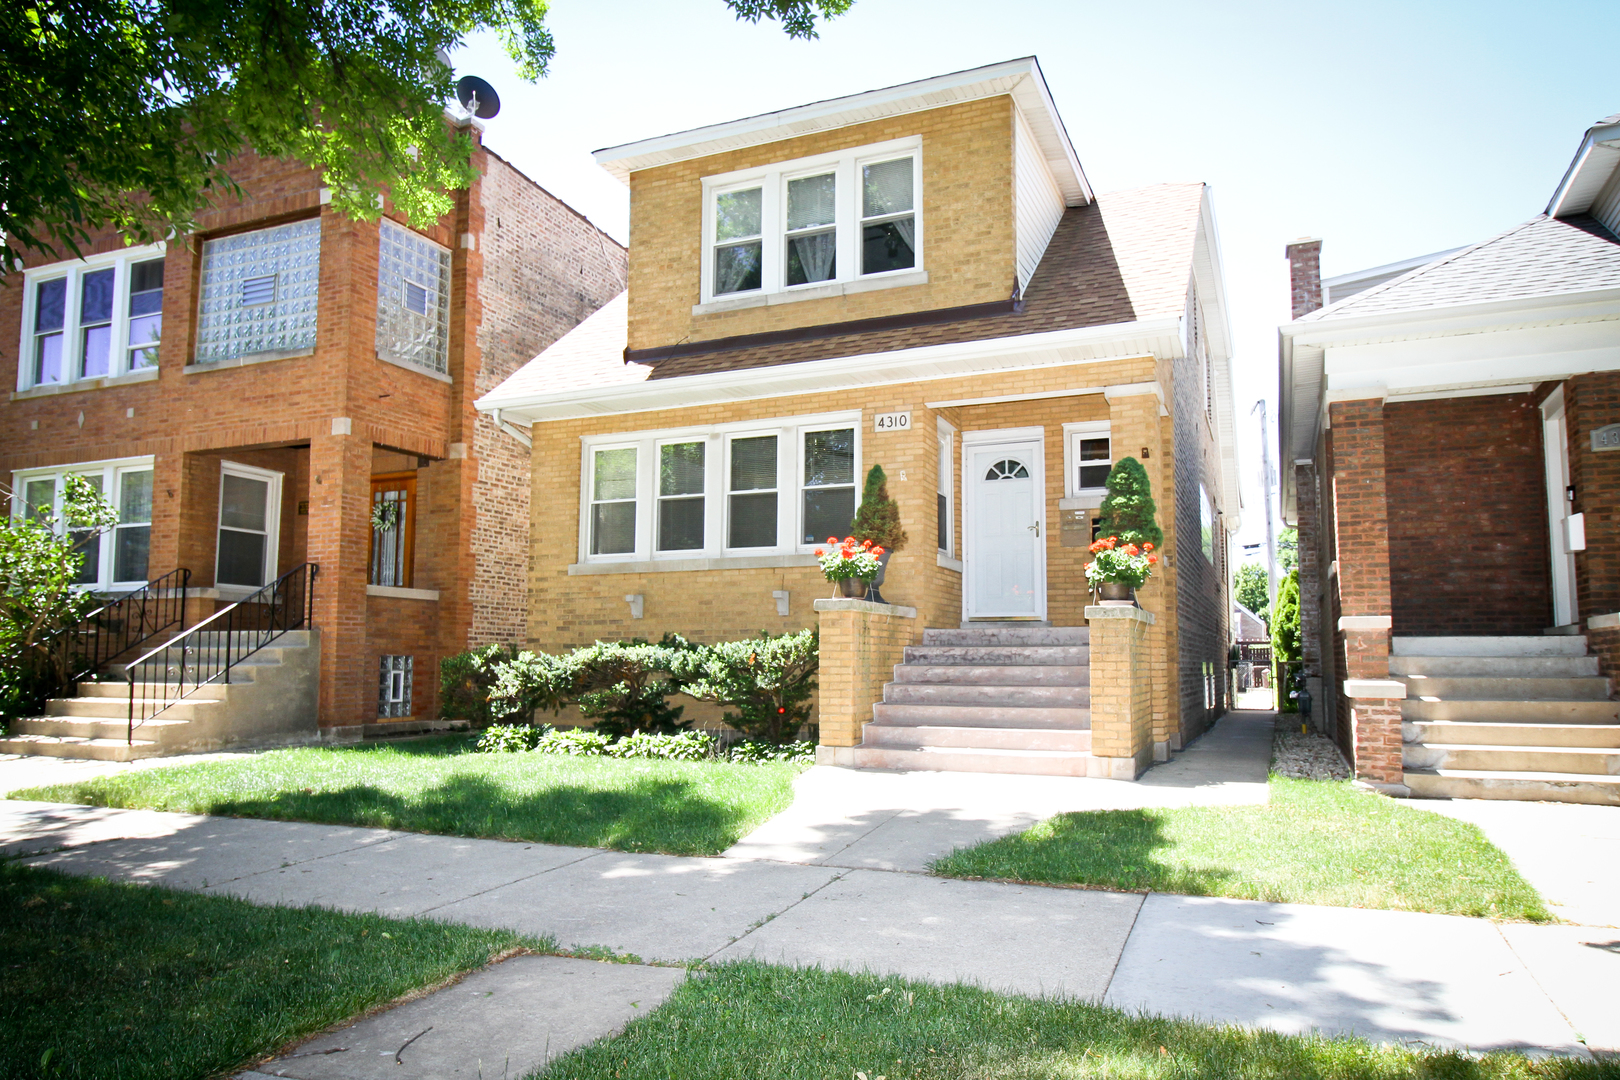 This multi-family home is found in a wonderful and friendly neighborhood conveniently located close